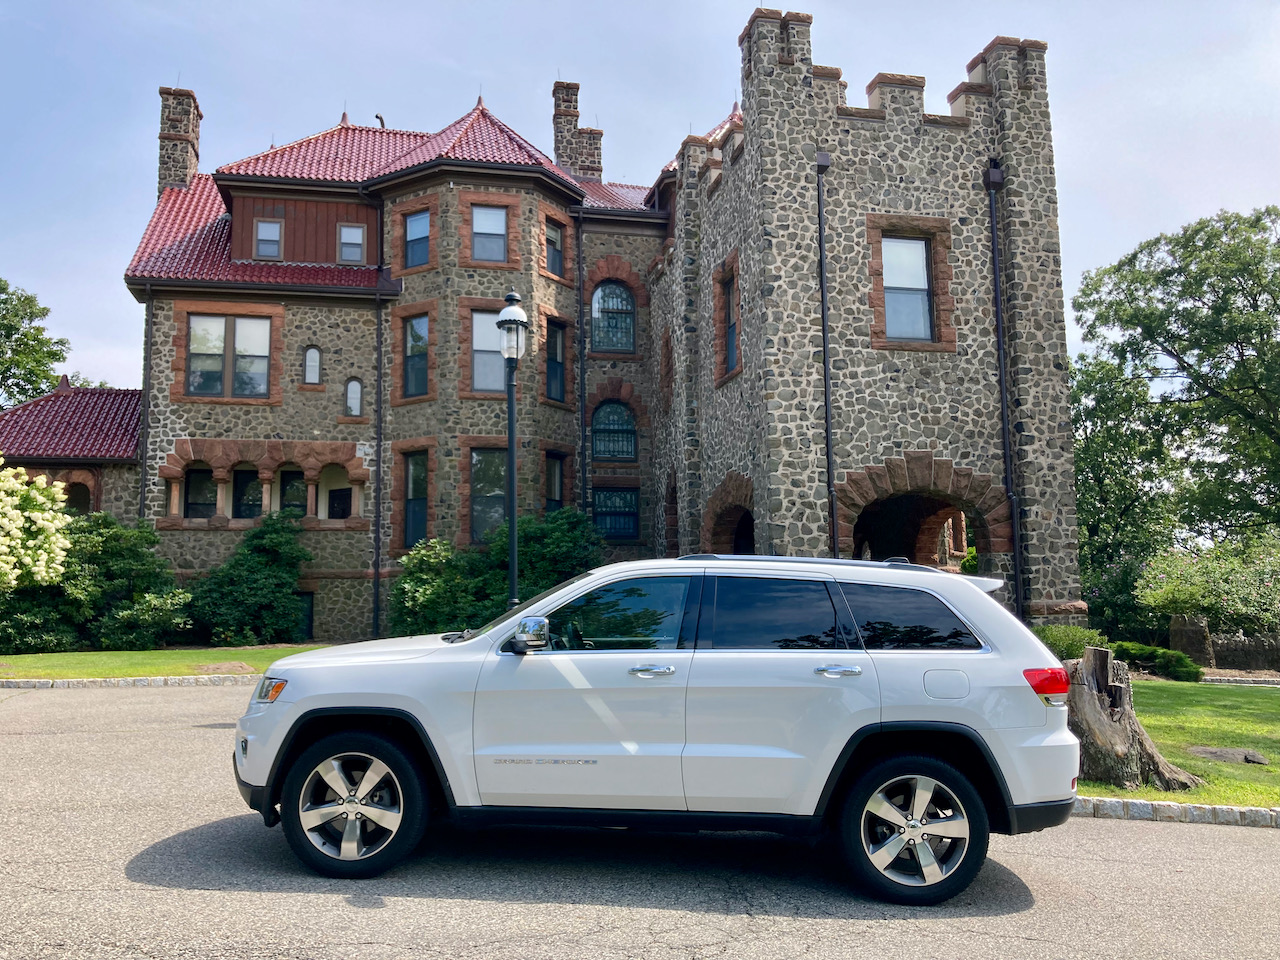 2014 Jeep Grand Cherokee parked in front of Kip's Castle.